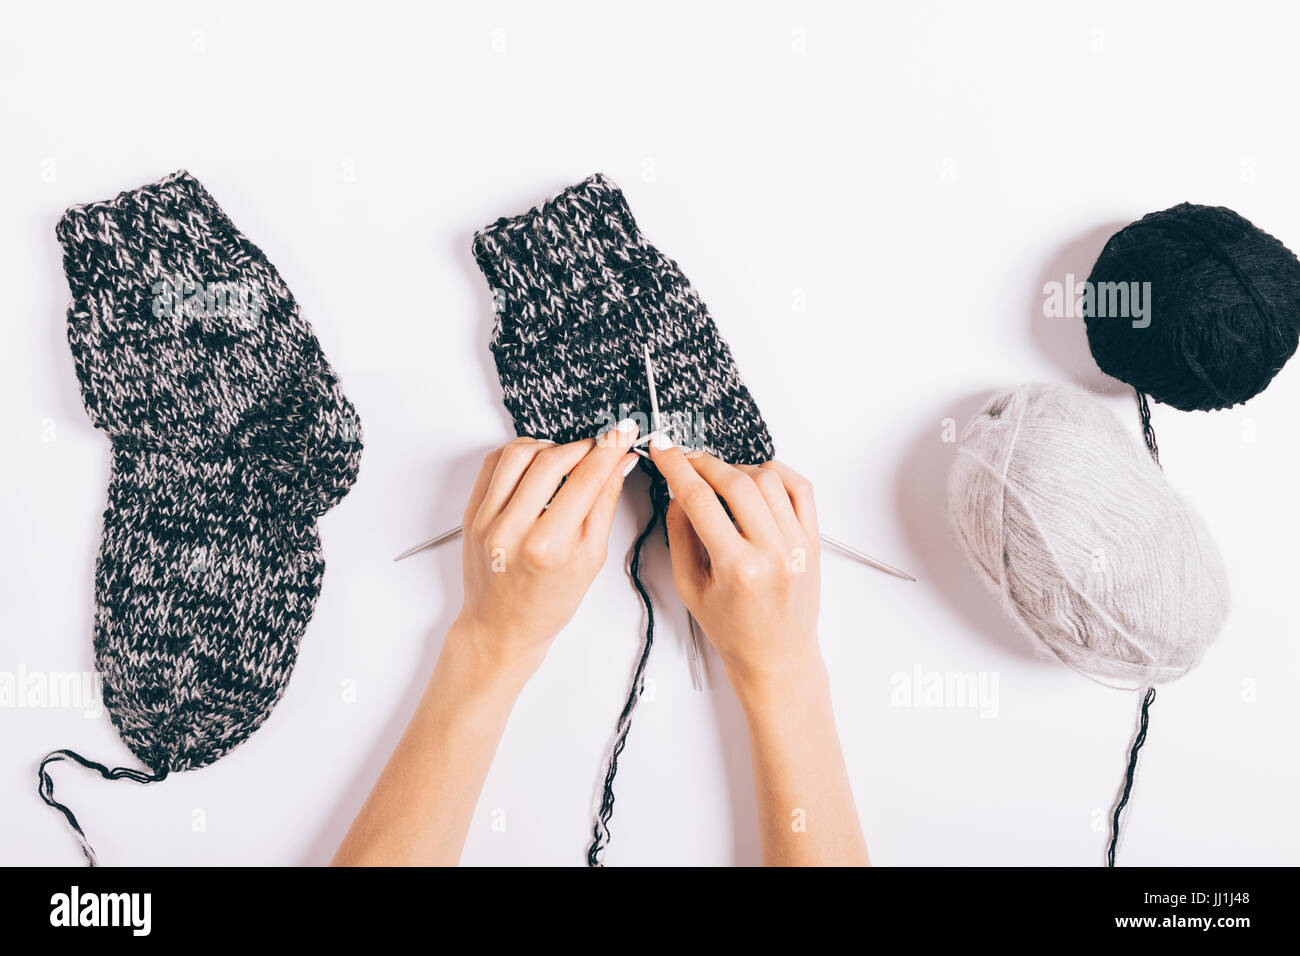 Female hands knit black wool socks on a white background, top view - Stock Image